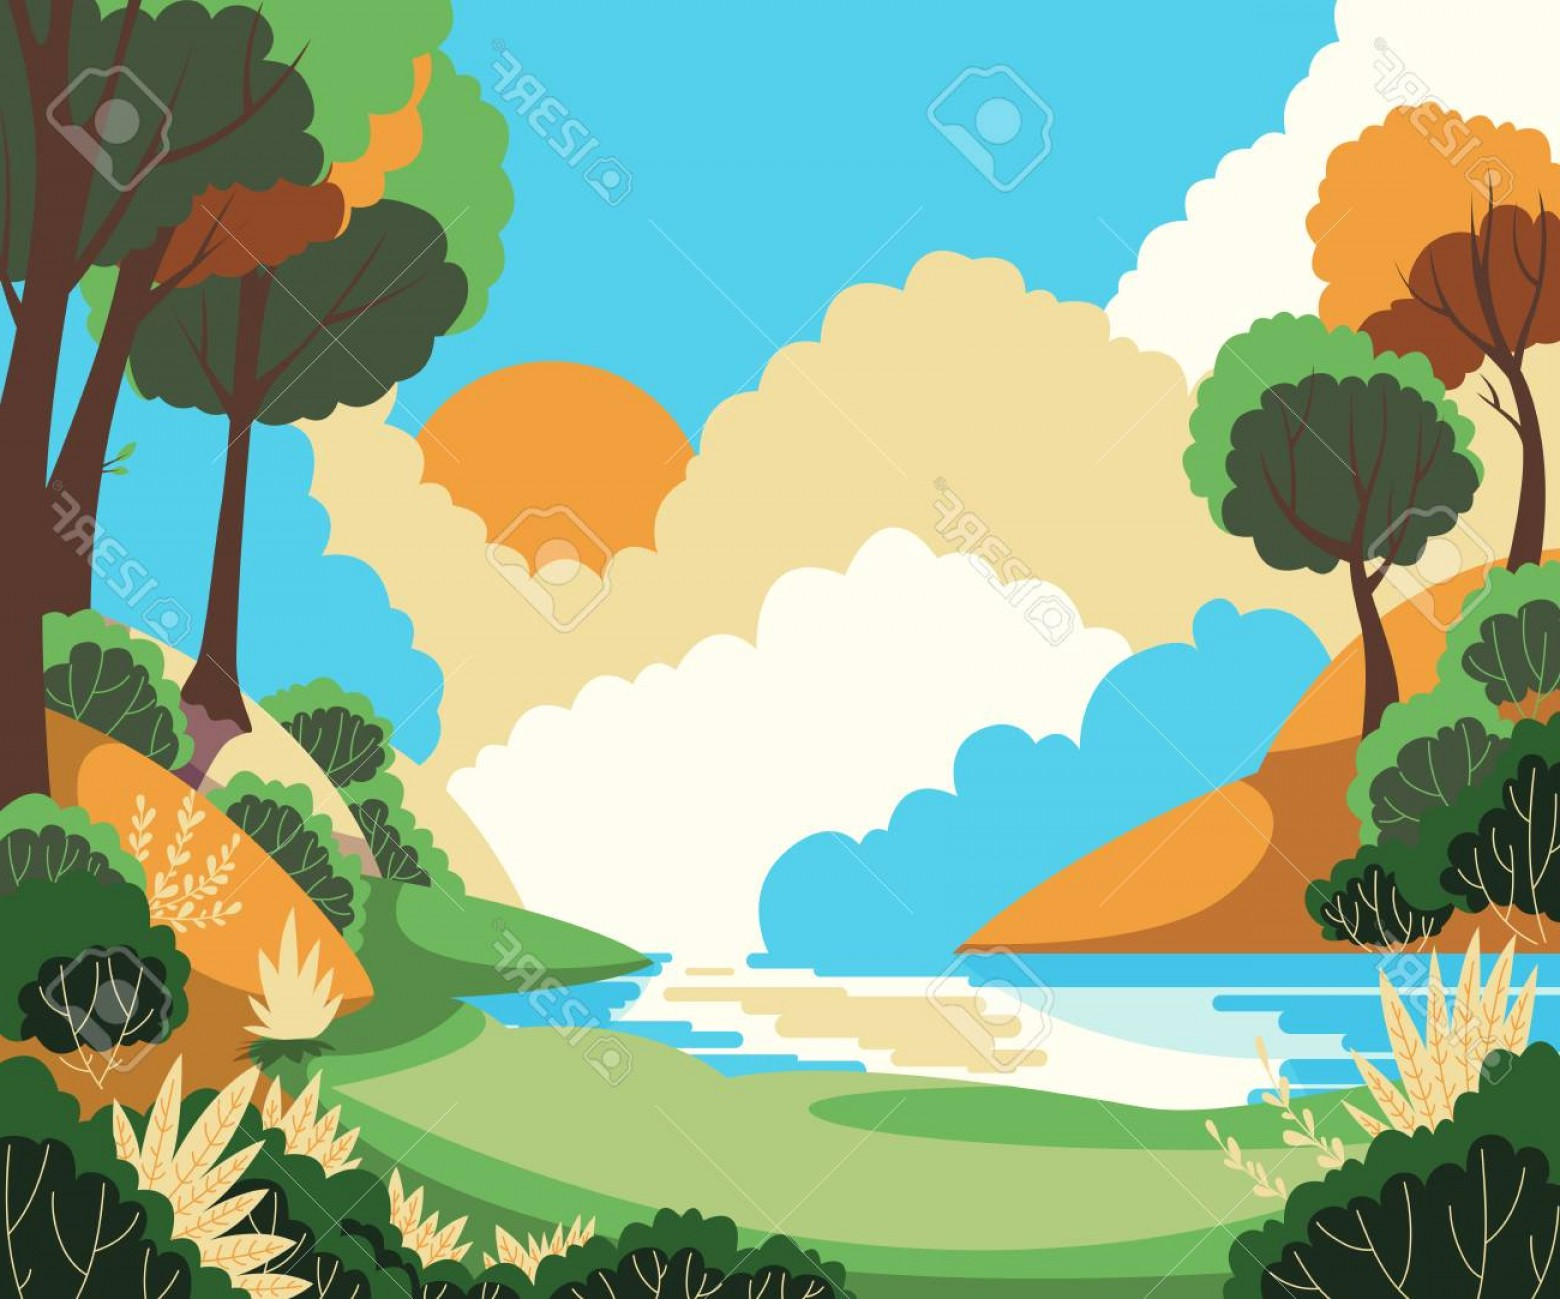 River Vector Art: Photostock Vector Beautiful Summer Landscape With Sun Trees And River Vector Illustration